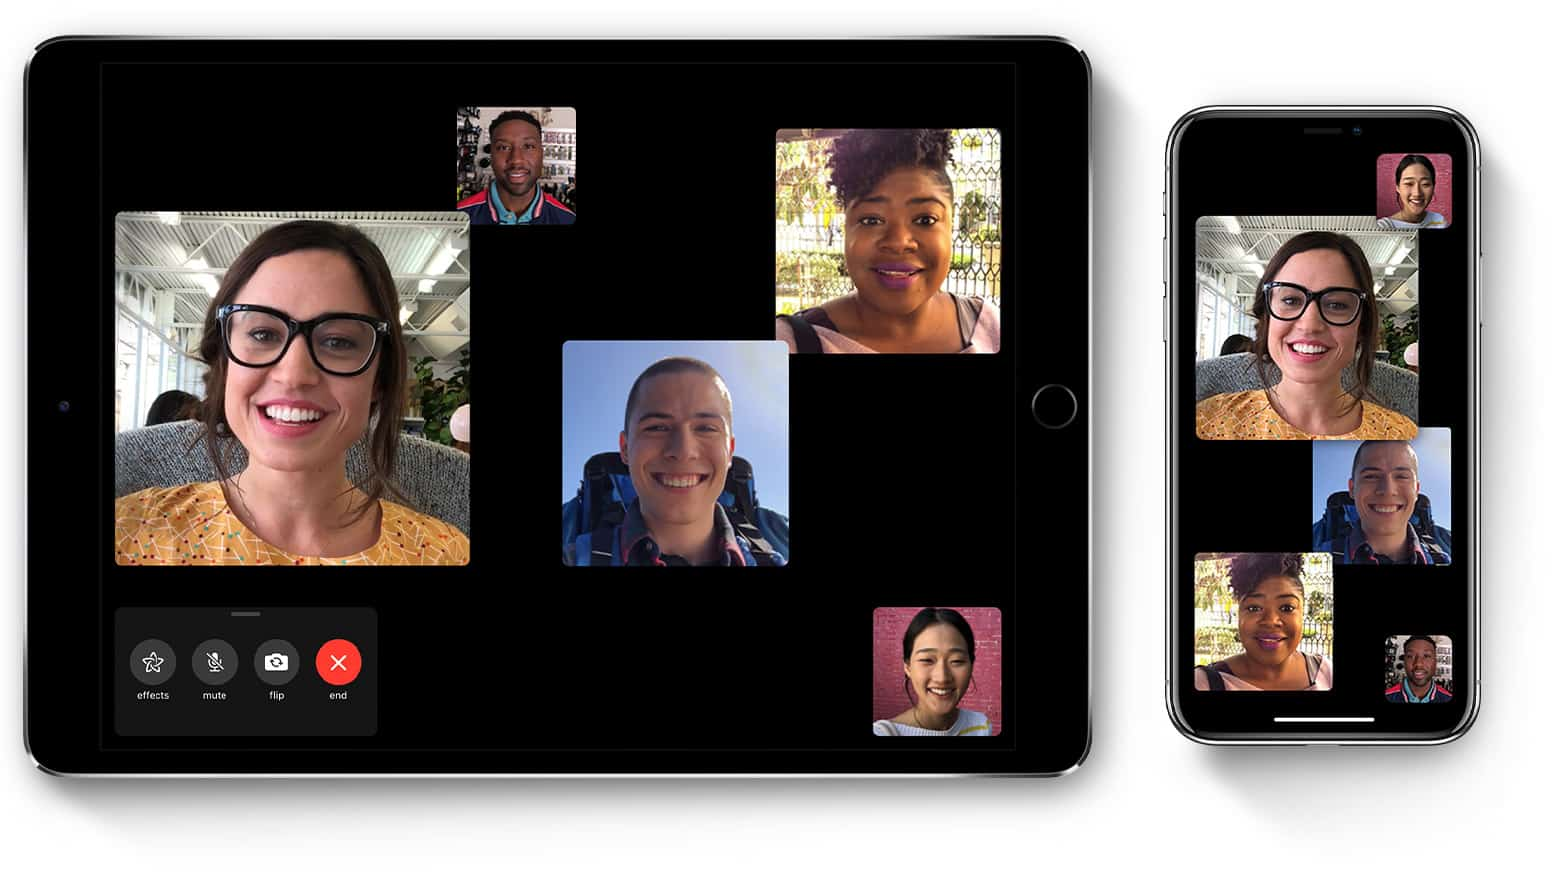 These are all the new updates to FaceTime